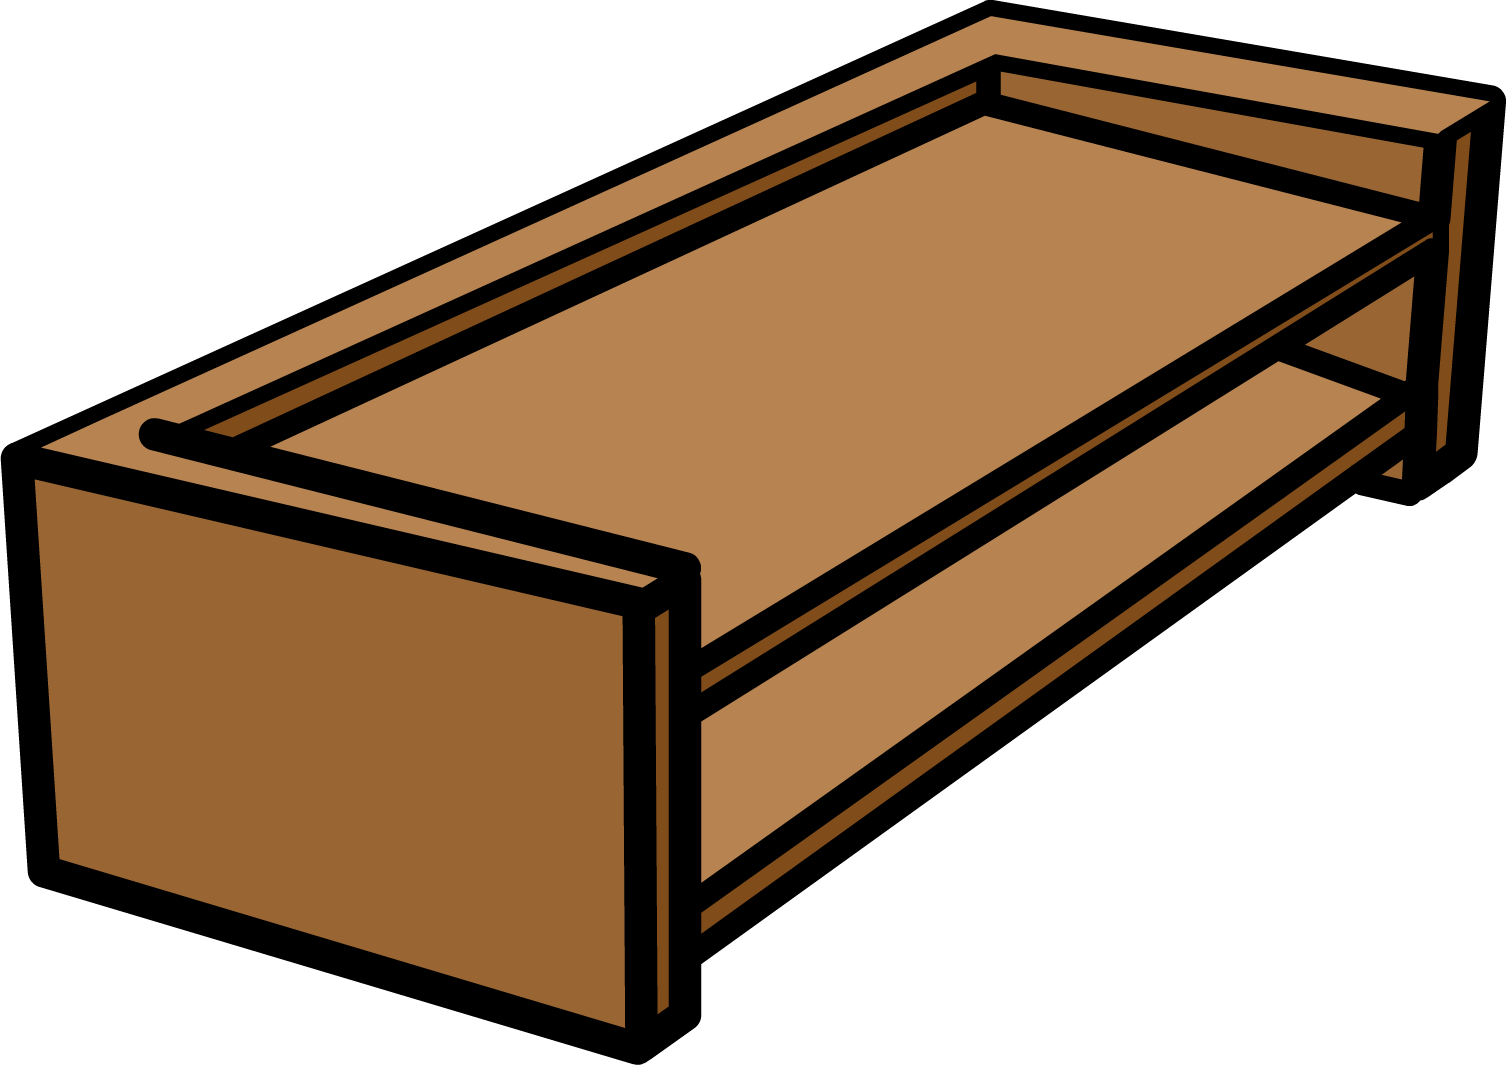 image royalty free library Closet clipart shoe rack. Club penguin wiki fandom.